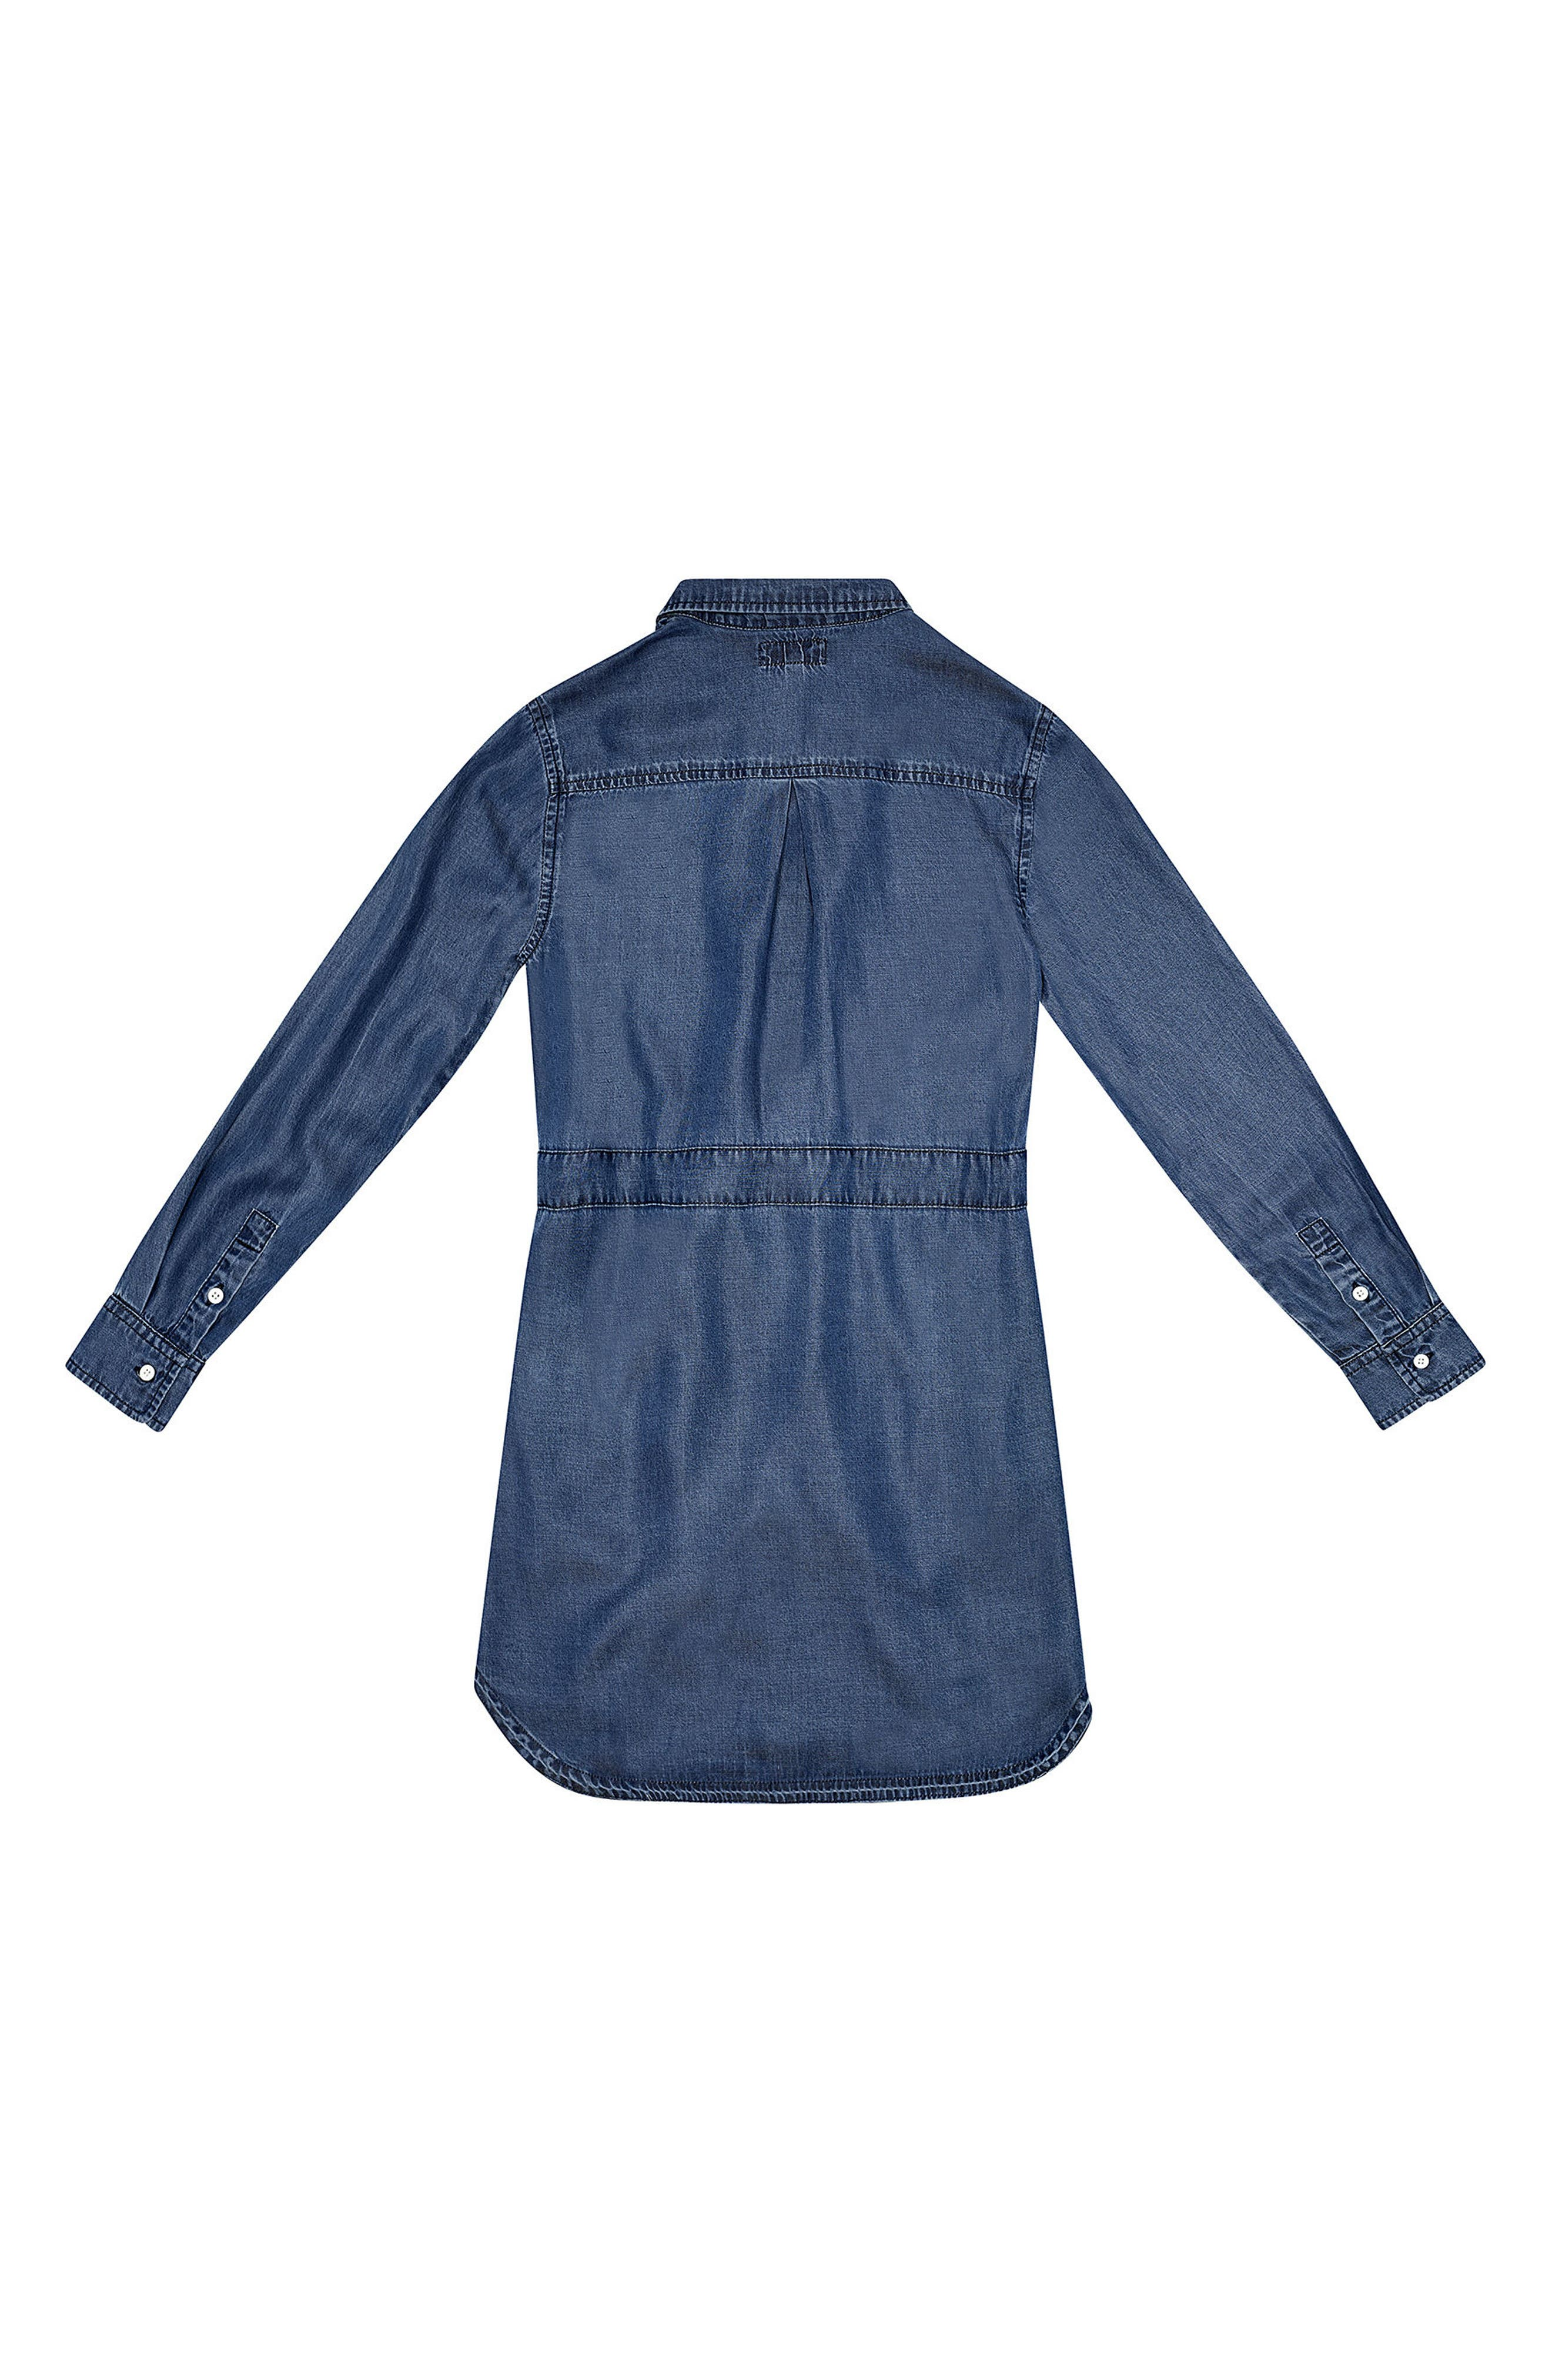 Alternate Image 2  - DL1961 Chambray Shirtdress (Big Girls)